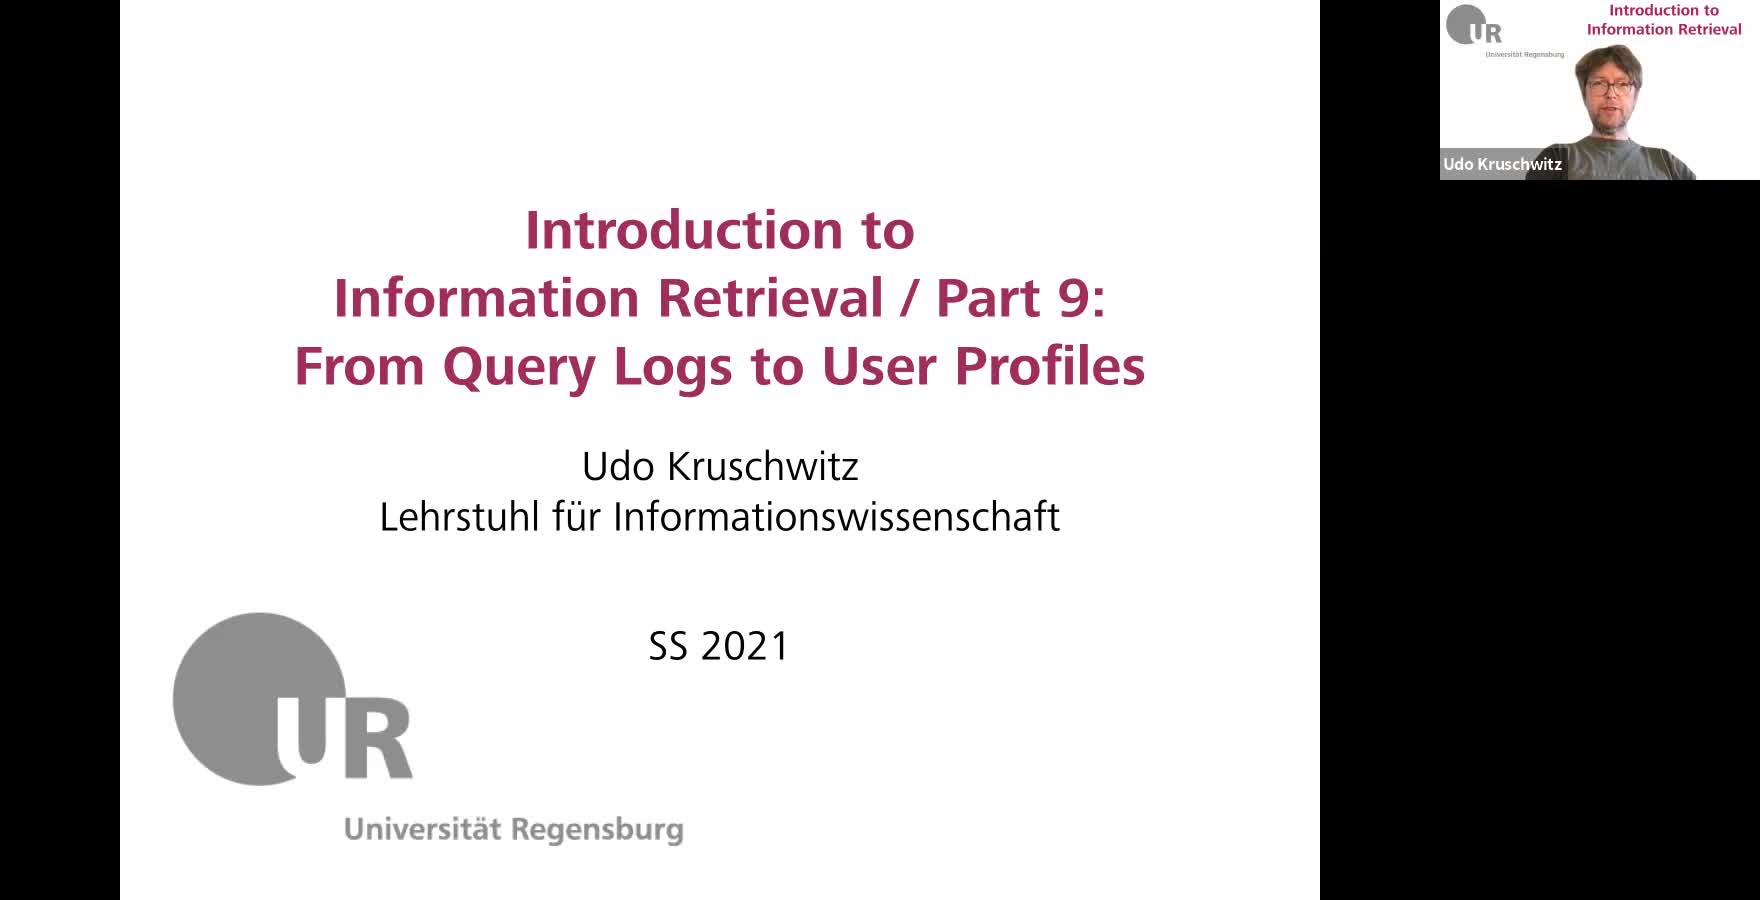 Introduction to Information Retrieval - Lecture 9 (From query logs to user profiles)